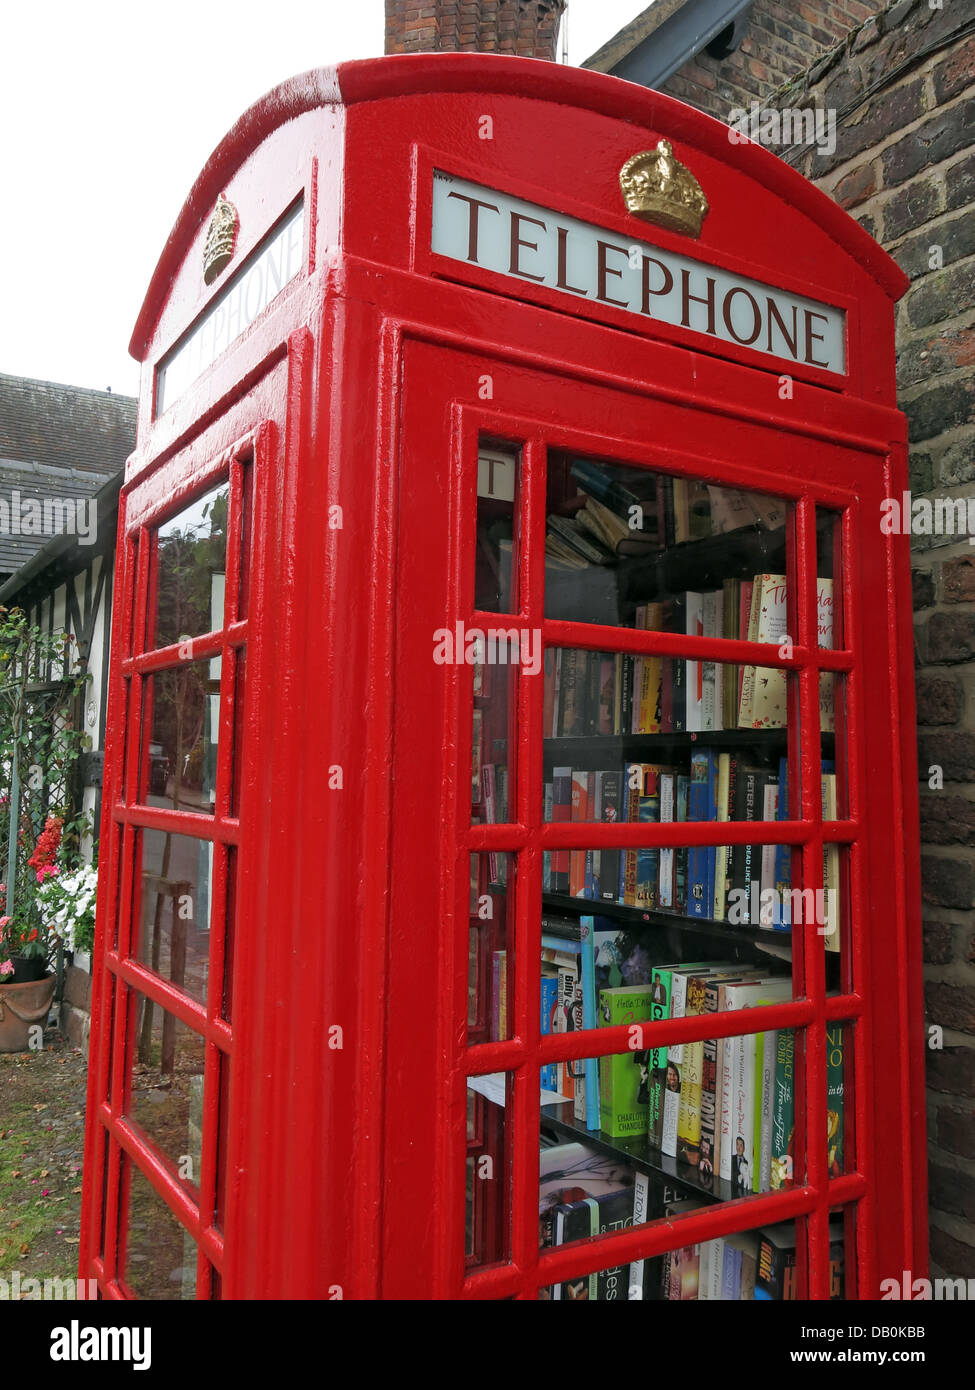 Classic,An,old,red,British,Telephone,box,turned,into,a,village,lending,library,being,made,into,lend,borrow,friendly,small,town,rural,demise,of,well,looked,after,gt,great,Budworth,Cheshire,east,west,new,mini,libraries,minilibrary,minilibraries,mini-libraries,kiosk,stocked,up,exchange,scheme,new,gotonysmith,We,are,hoping,people,will,use,them,on,a,regular,basis,and,every,time,they,take,a,book,they,will,leave,one,behind,book-exchange,read,reading,literature,literary,GPO,BT,BritishTelecom,British,Telecom,eccentric,eccentrics,English,England,beautiful,Buy Pictures of,Buy Images Of